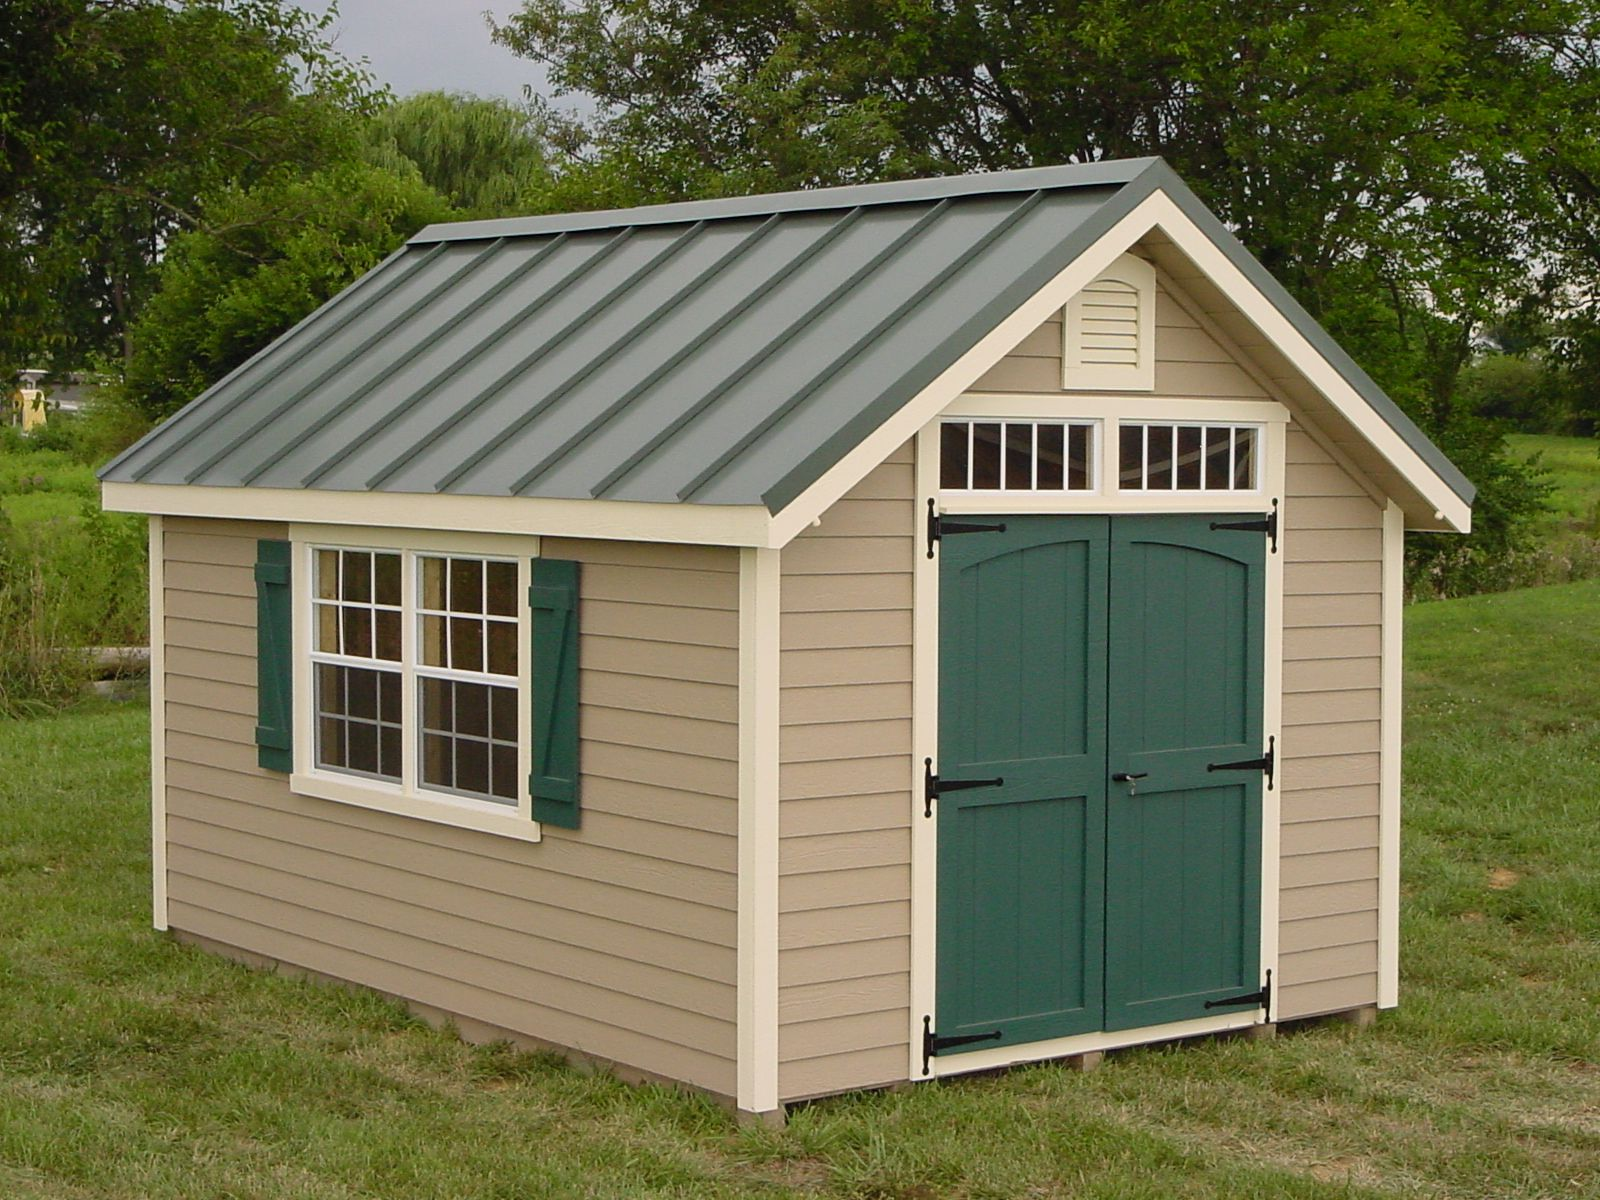 This English Garden shed features our standing seam metal